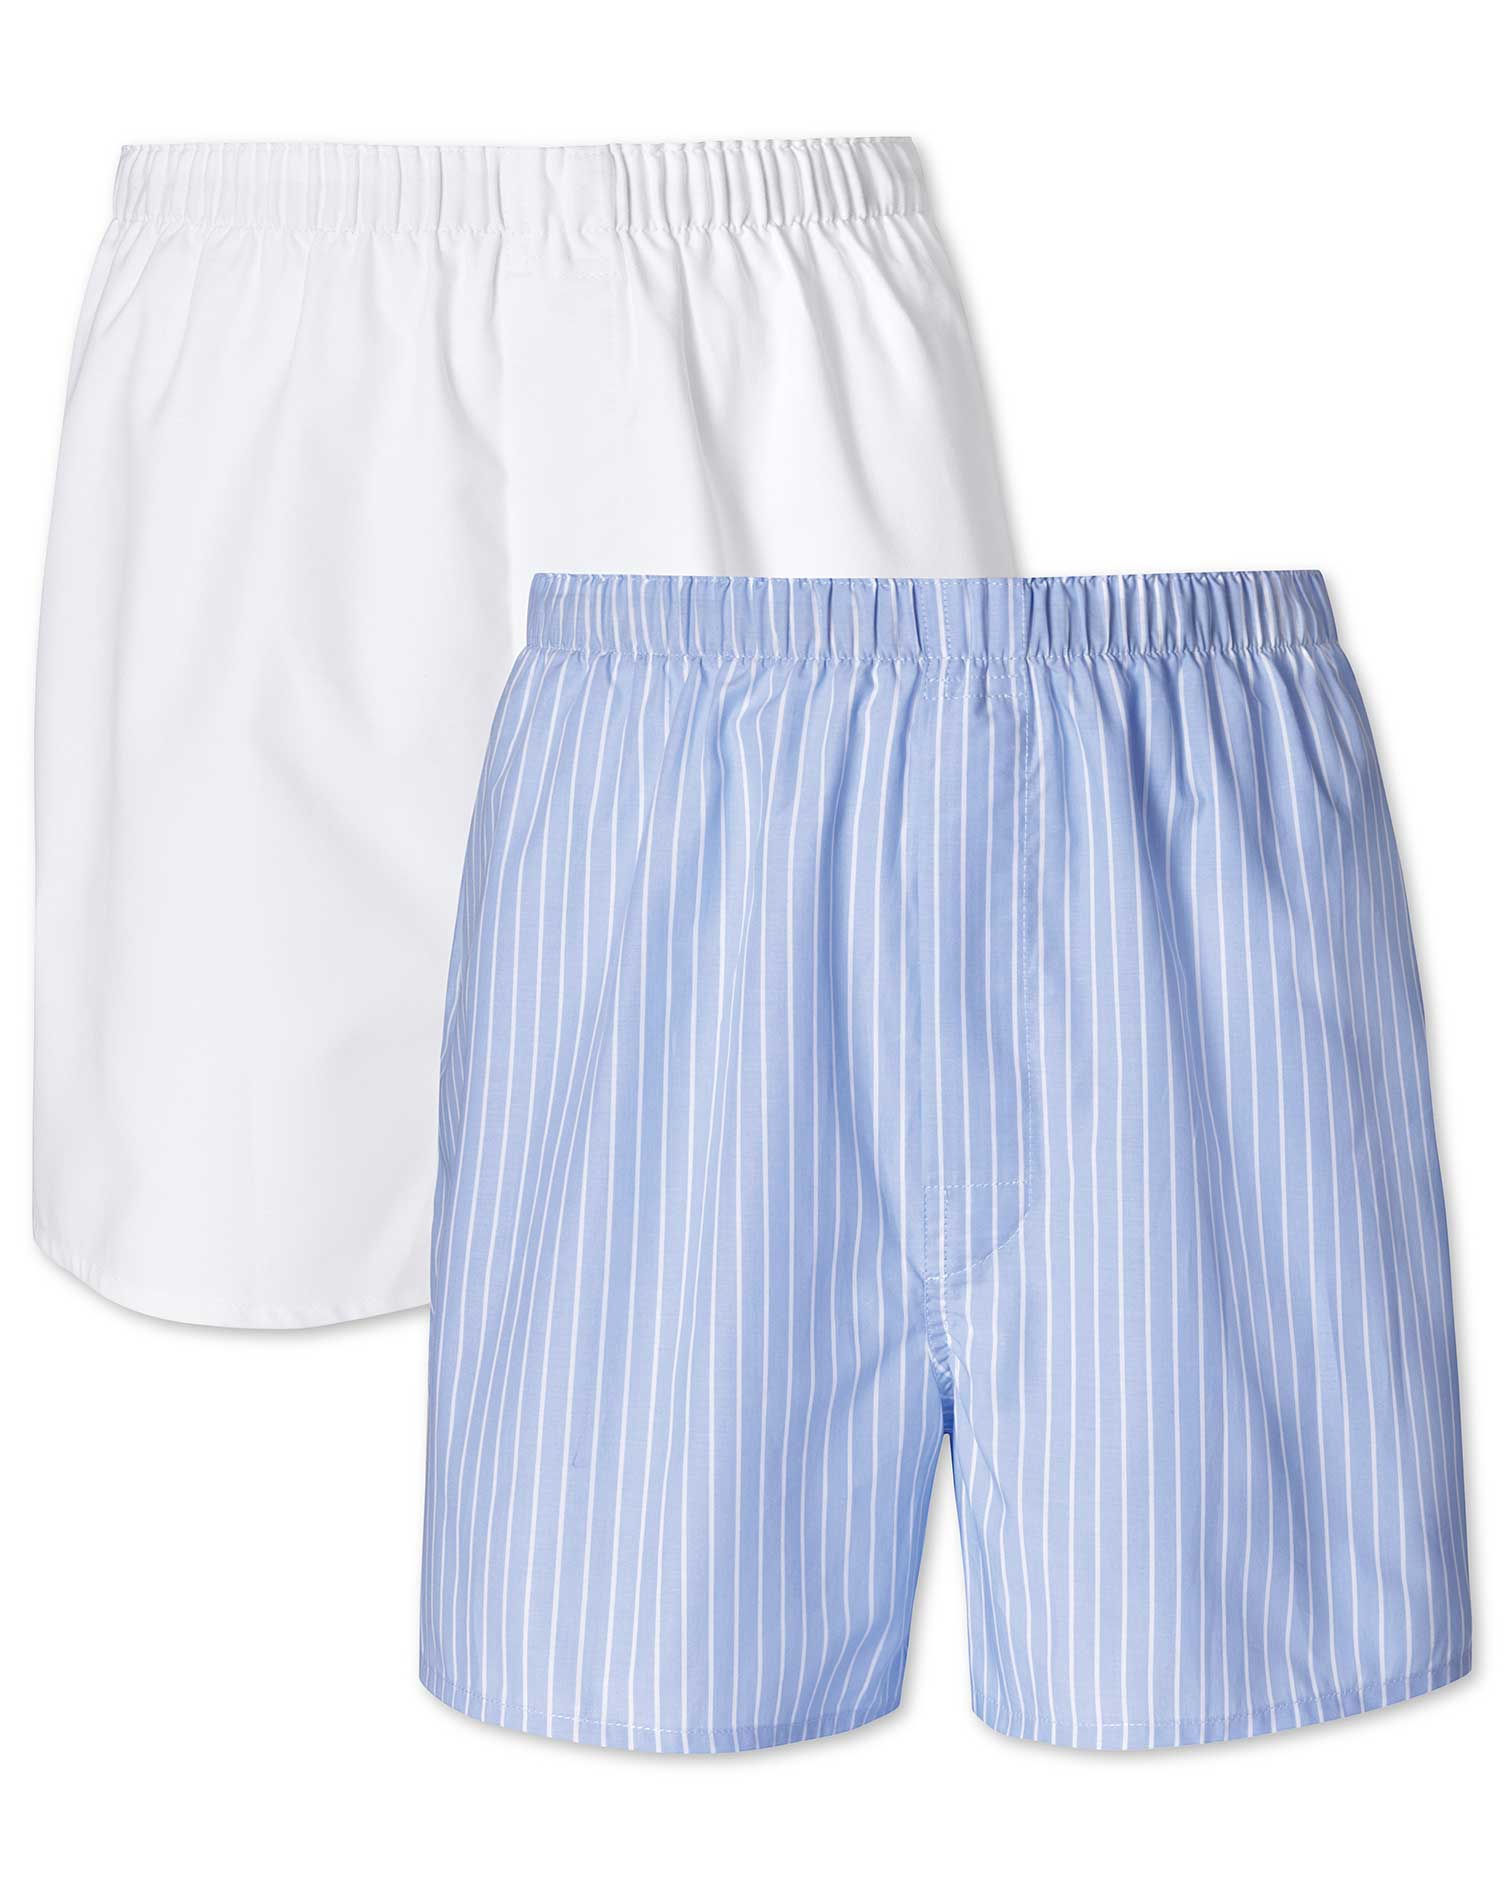 Sky Stripe and White 2 Pack Boxers Size XL by Charles Tyrwhitt